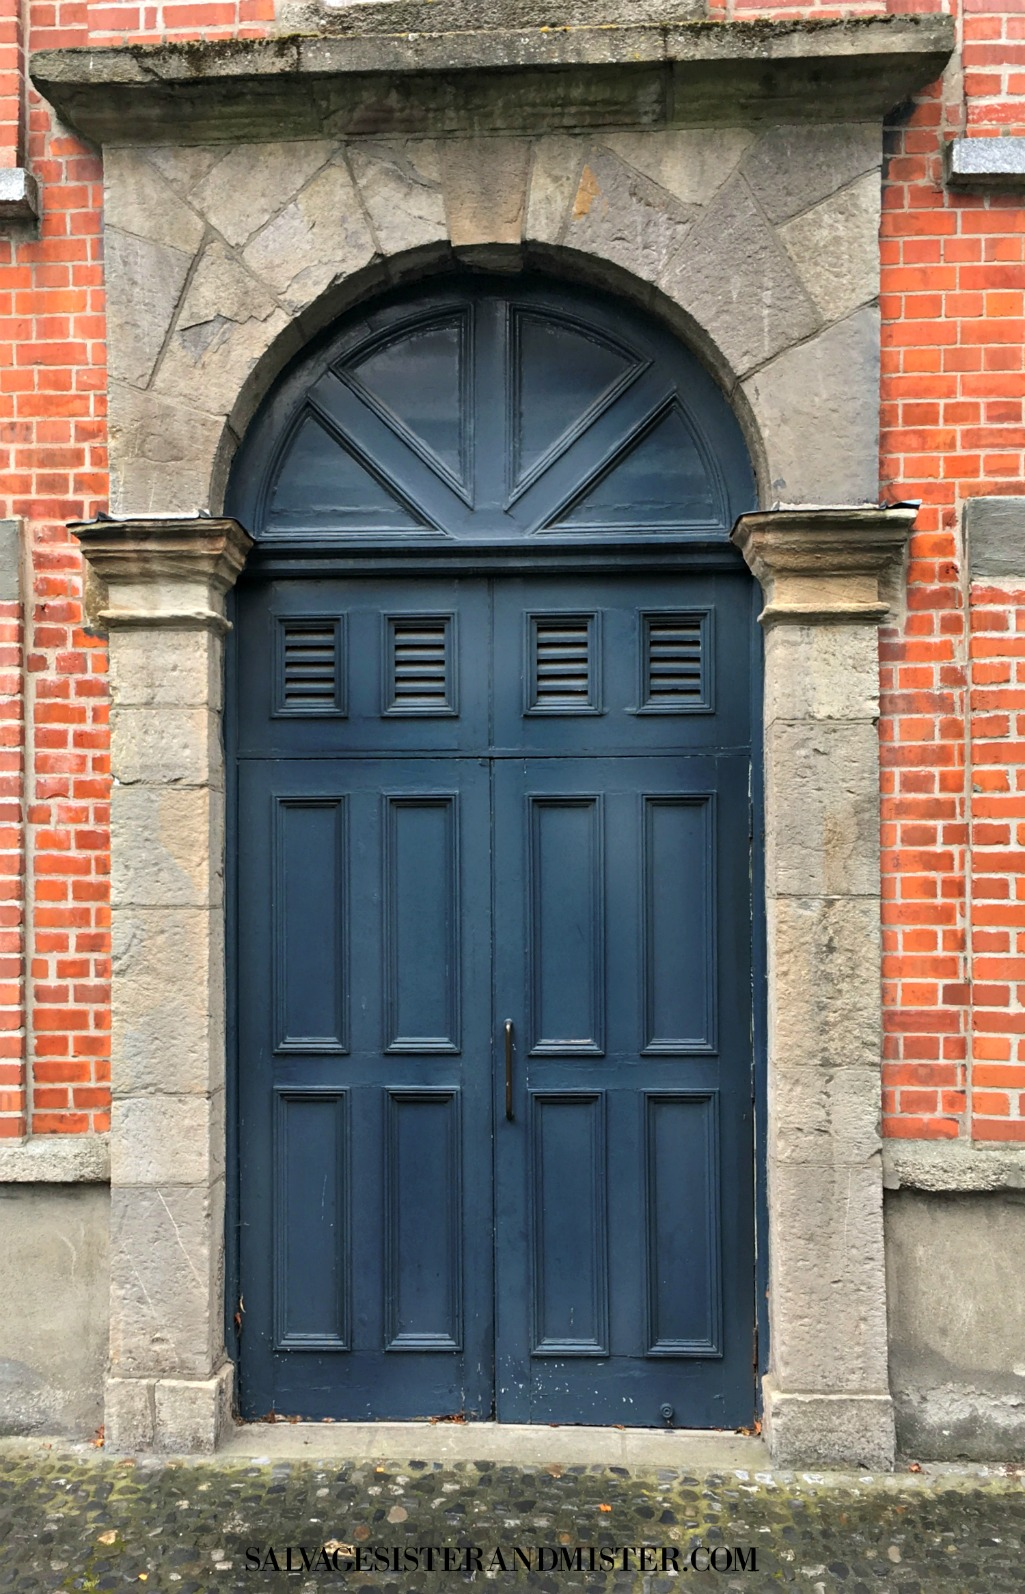 The colorful and beautiful doors of Ireland on salvagesisterandmister.com